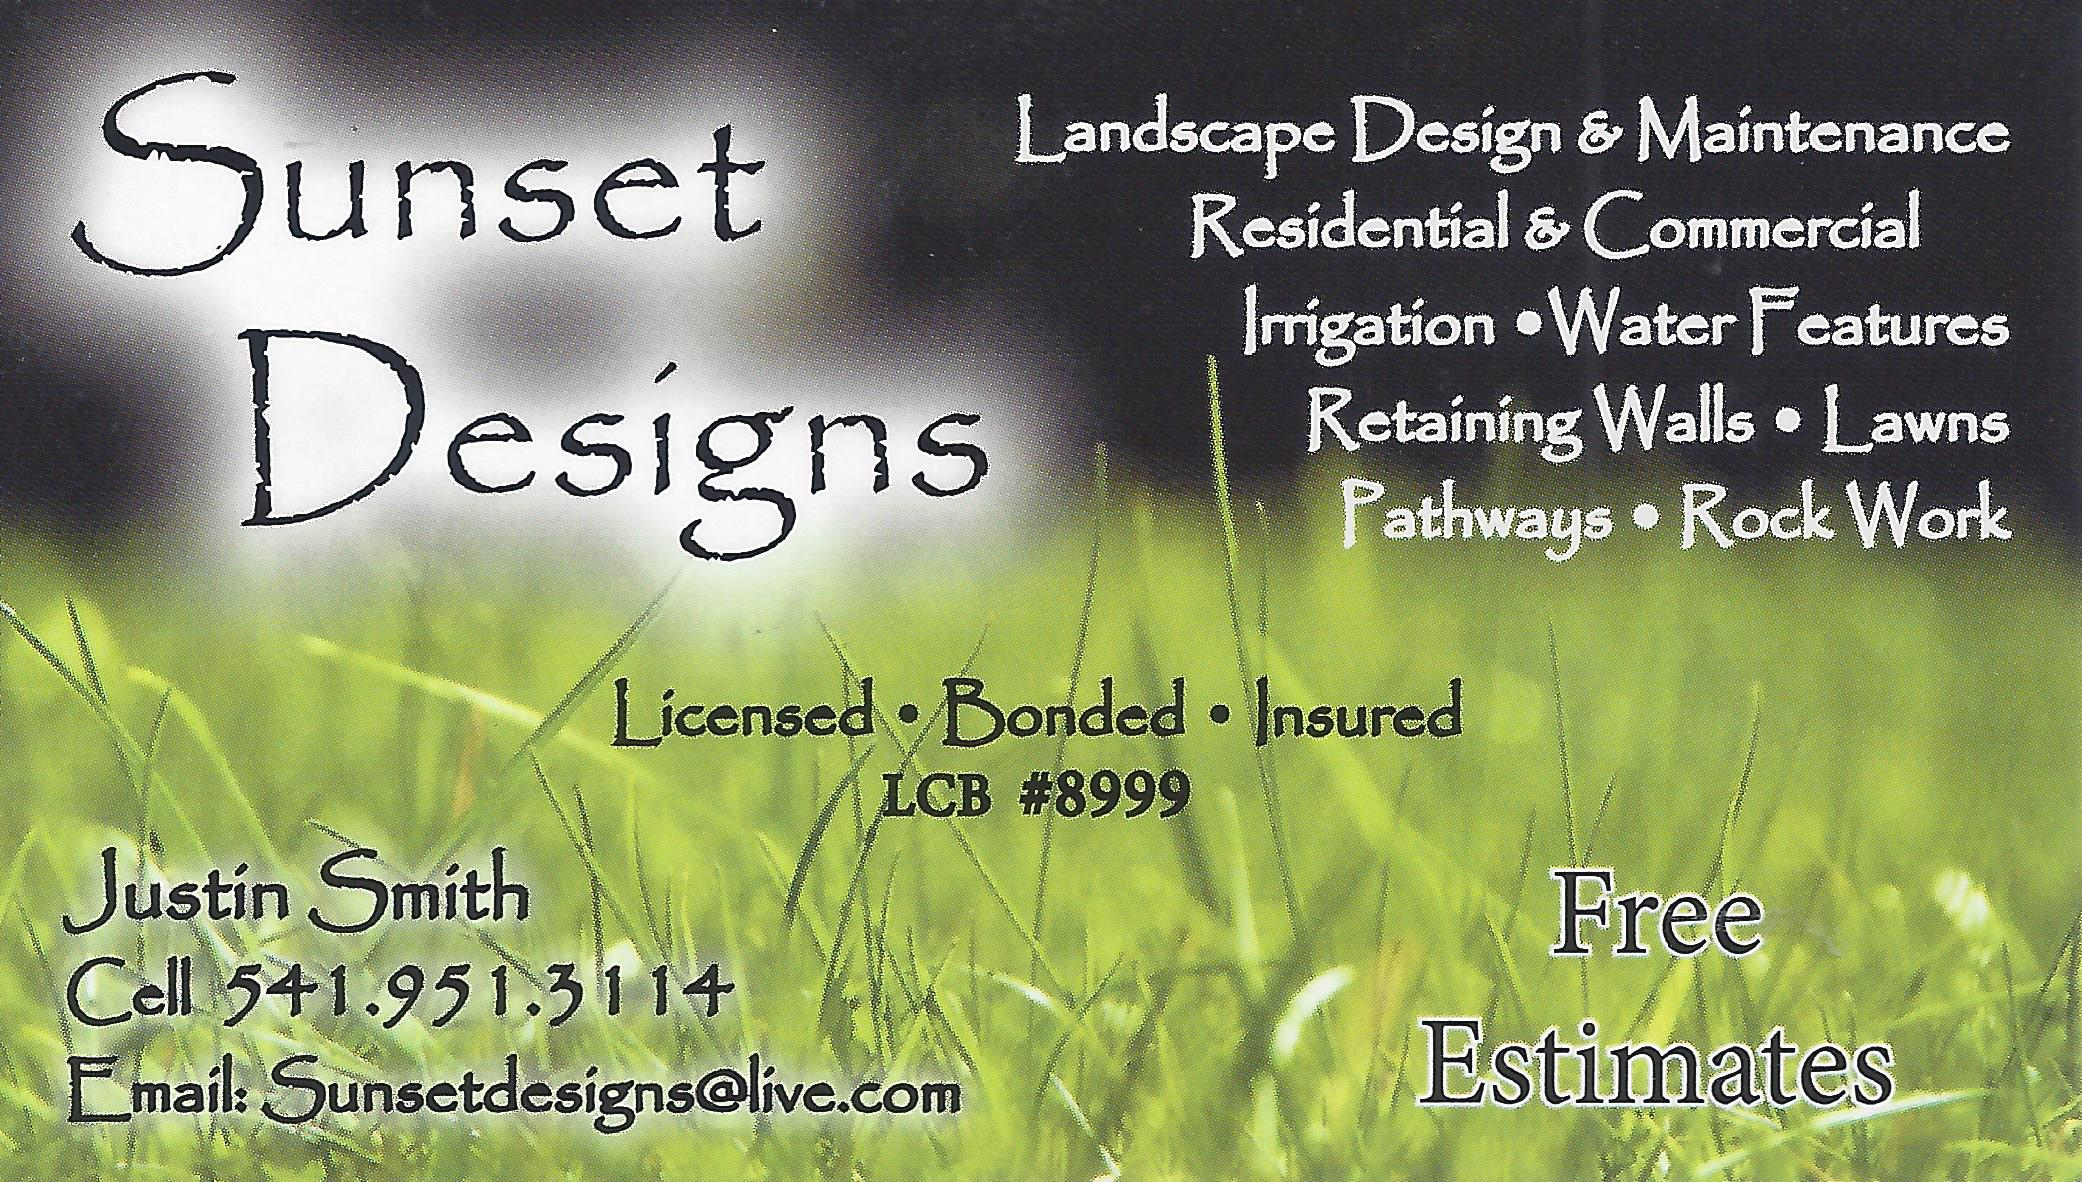 Sunset Designs